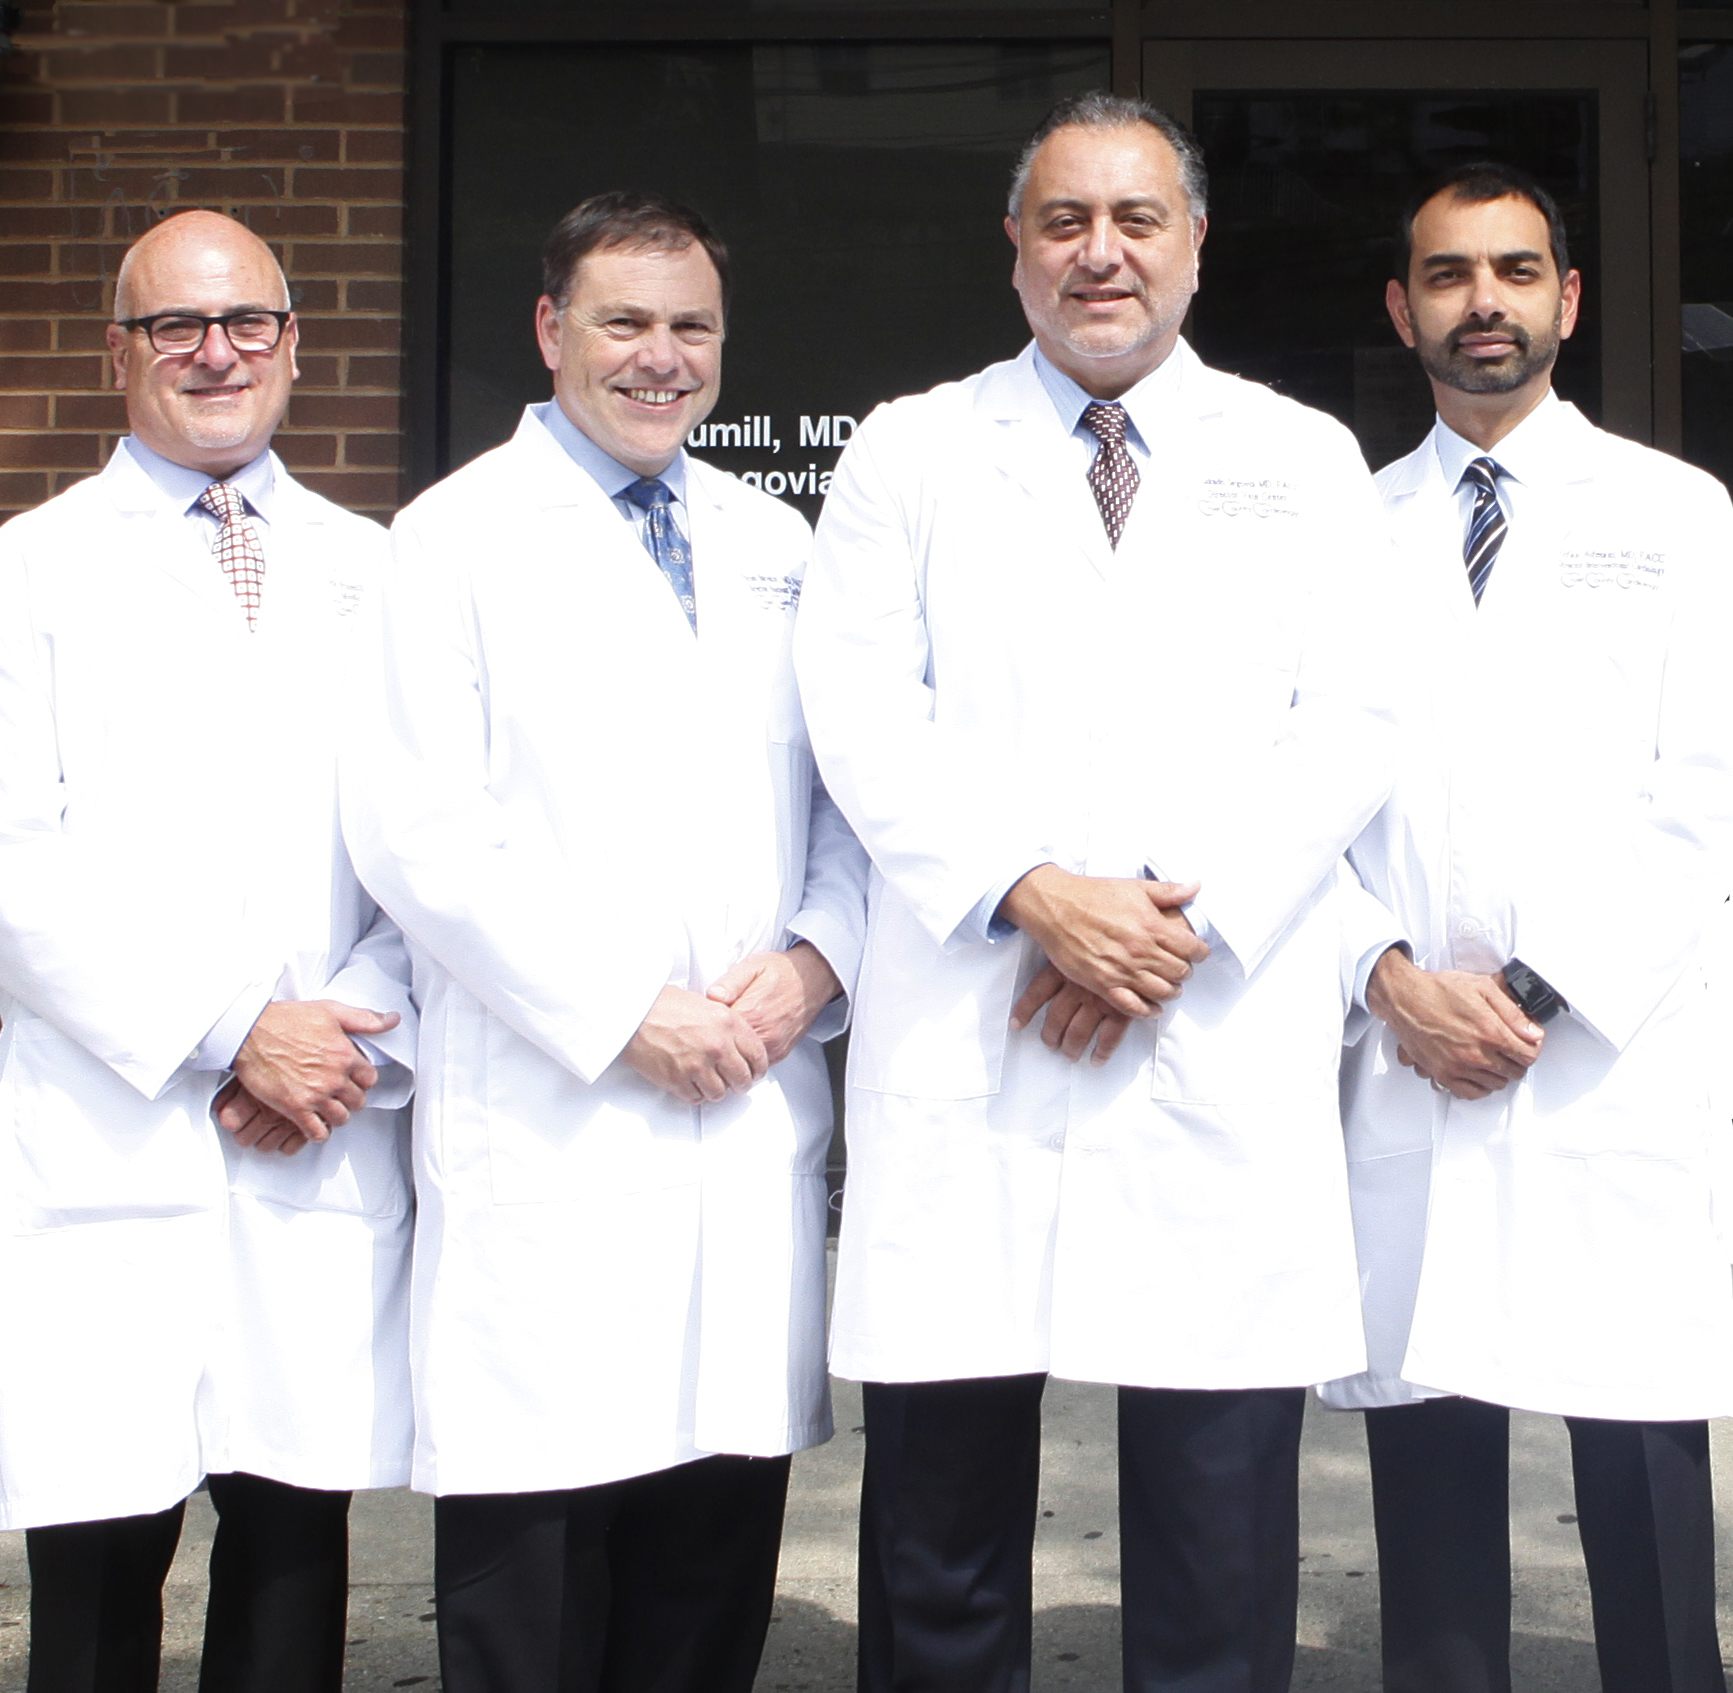 Best cardiology group in nj